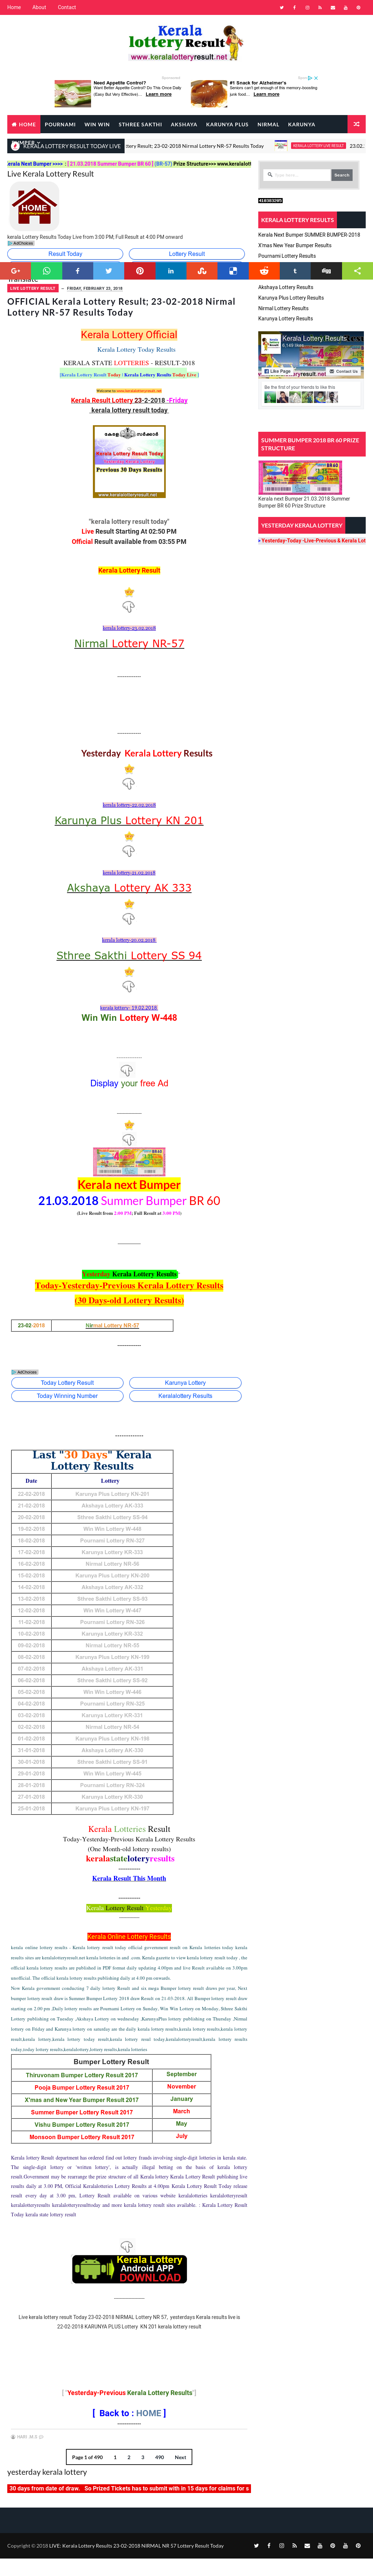 Kerala Lottery Results Competitors, Revenue and Employees